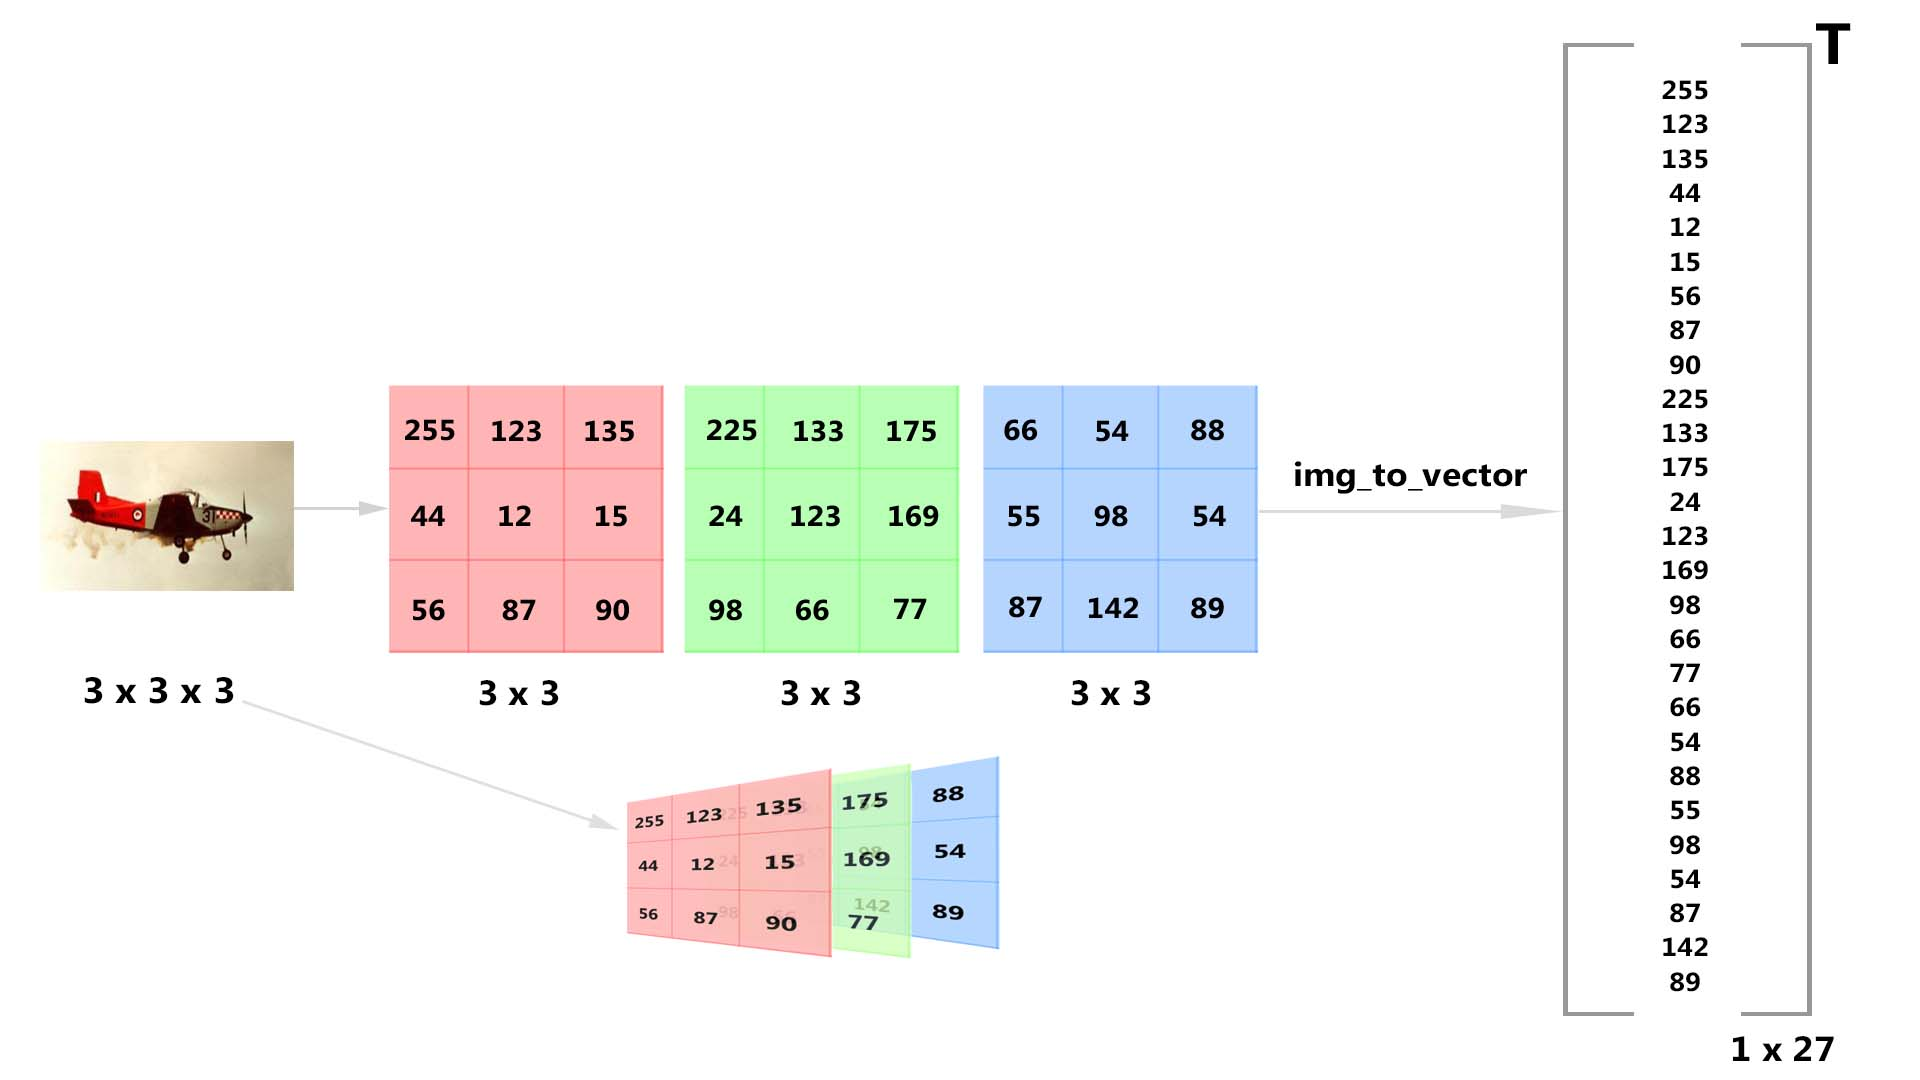 Logistic Regression with a Neural Network mindset using NumPy and